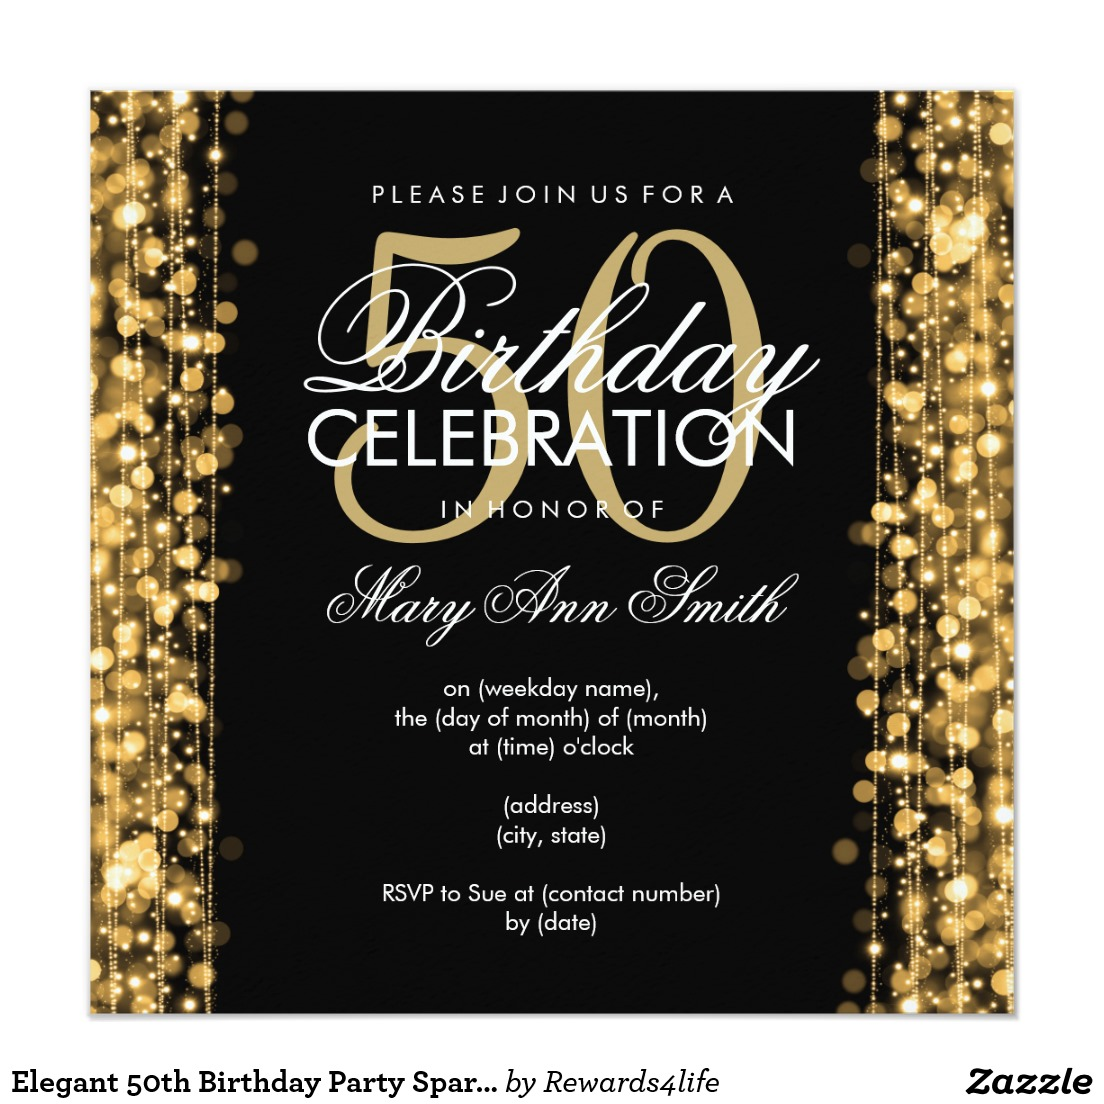 14 50 birthday invitations designs free sample templates 50 birthday celebration party invitations filmwisefo Choice Image